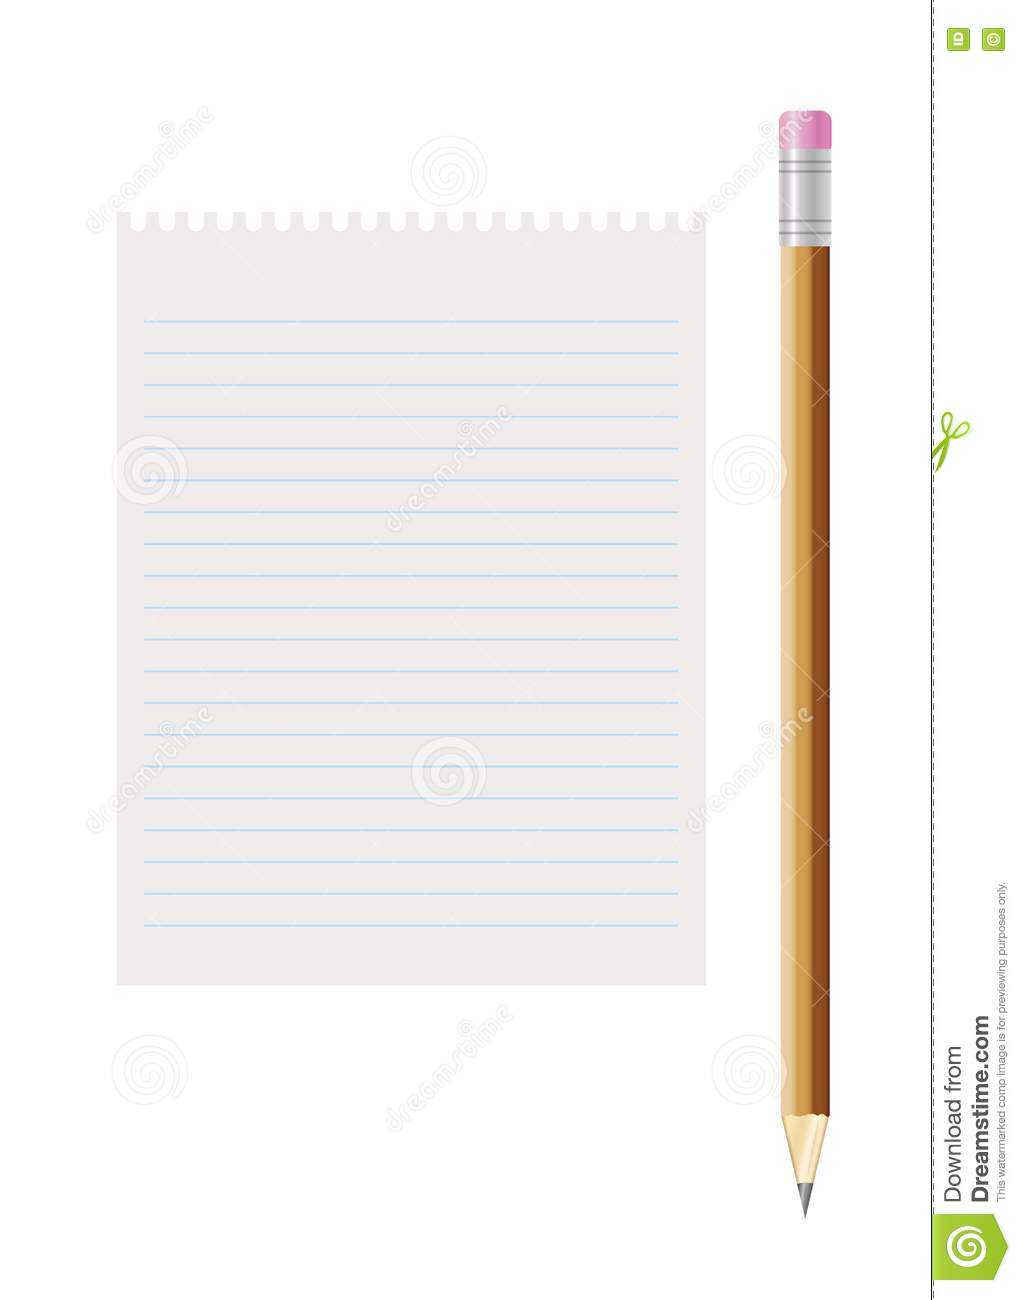 Blank Lined Paper And Pencil With Eraser  Lined Paper Background For Word